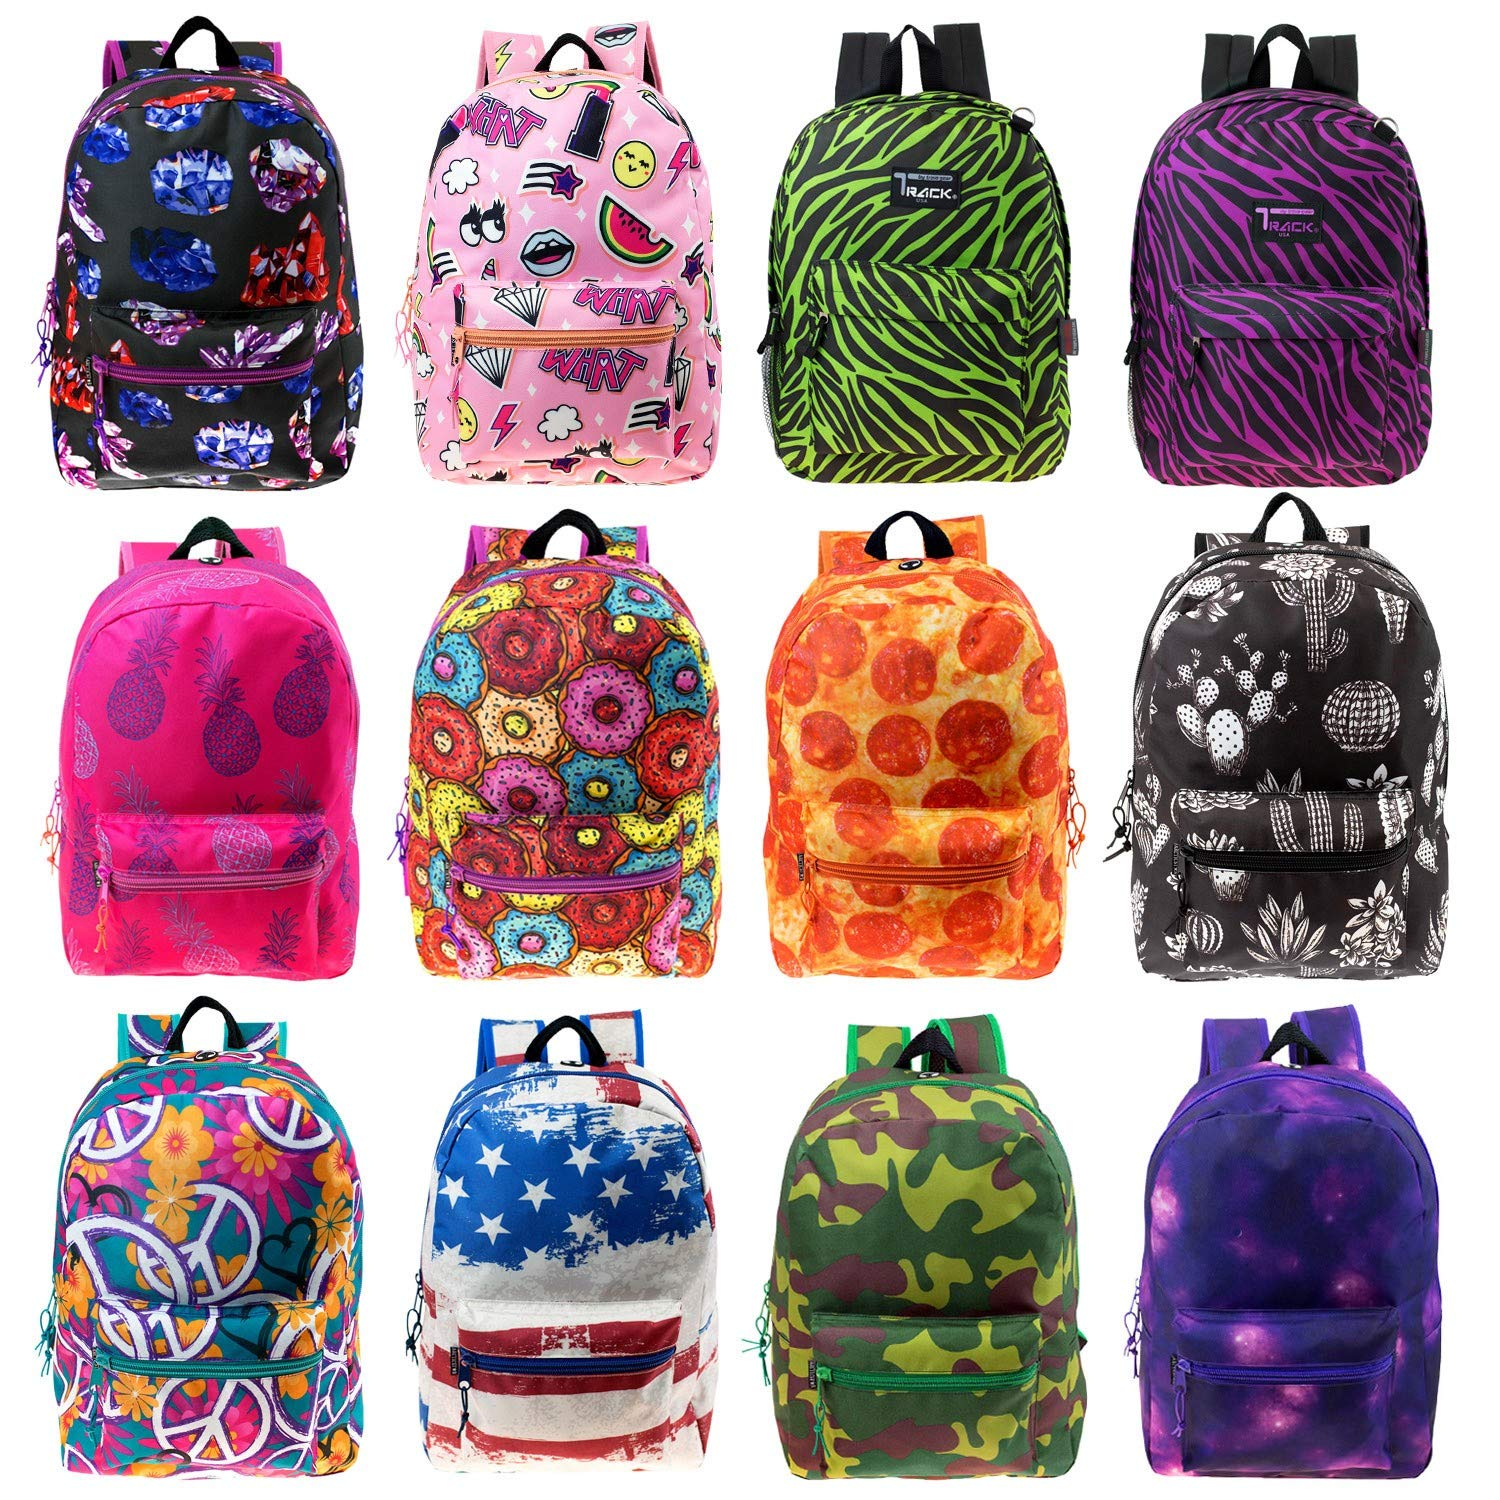 17'' Wholesale Kids Classic Padded Backpacks in 8 to 12 Randomly Assorted Unique Prints - Bulk Case of 24 Bookbags